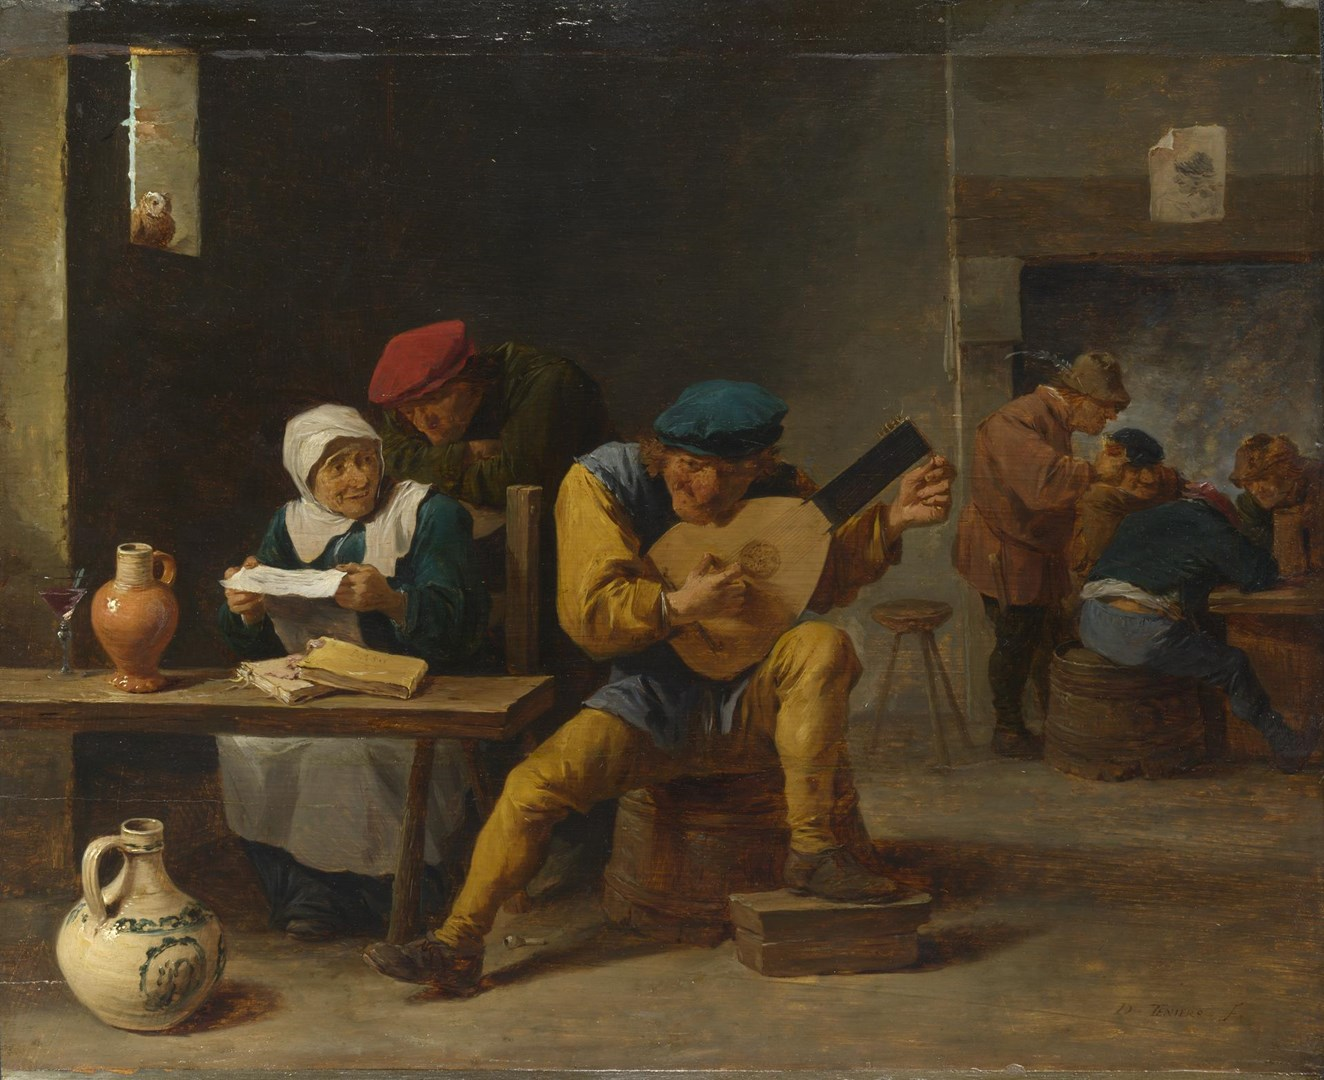 Peasants making Music in an Inn by Studio of David Teniers the Younger